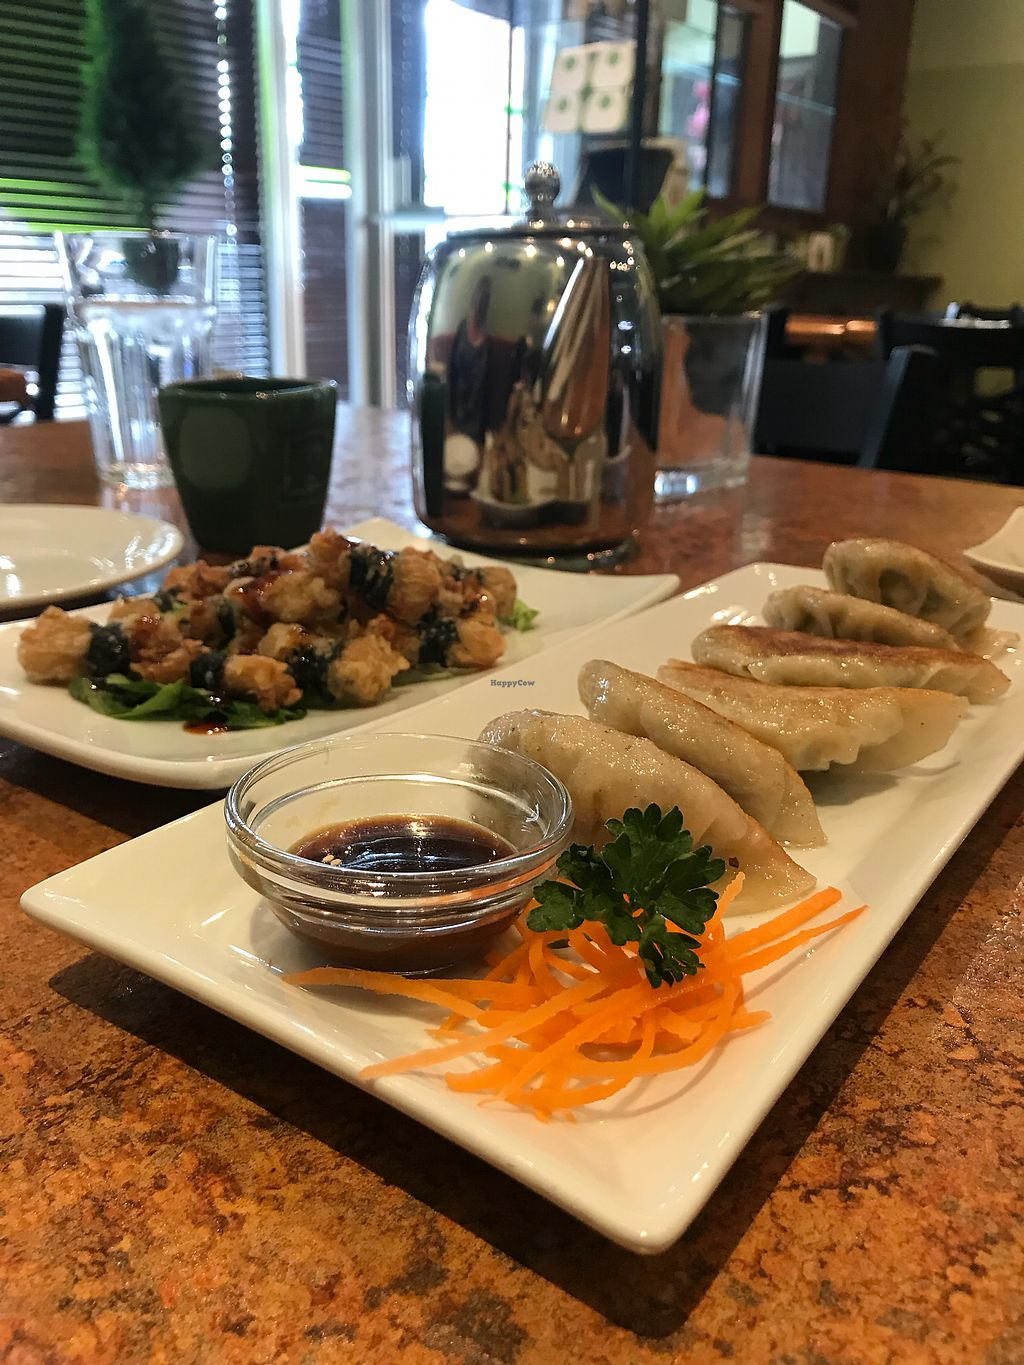 "Photo of Loma House Vegetarian Express  by <a href=""/members/profile/Madimassacre"">Madimassacre</a> <br/>Potstickers and enoki mushroom rolls <br/> January 20, 2018  - <a href='/contact/abuse/image/19358/349054'>Report</a>"